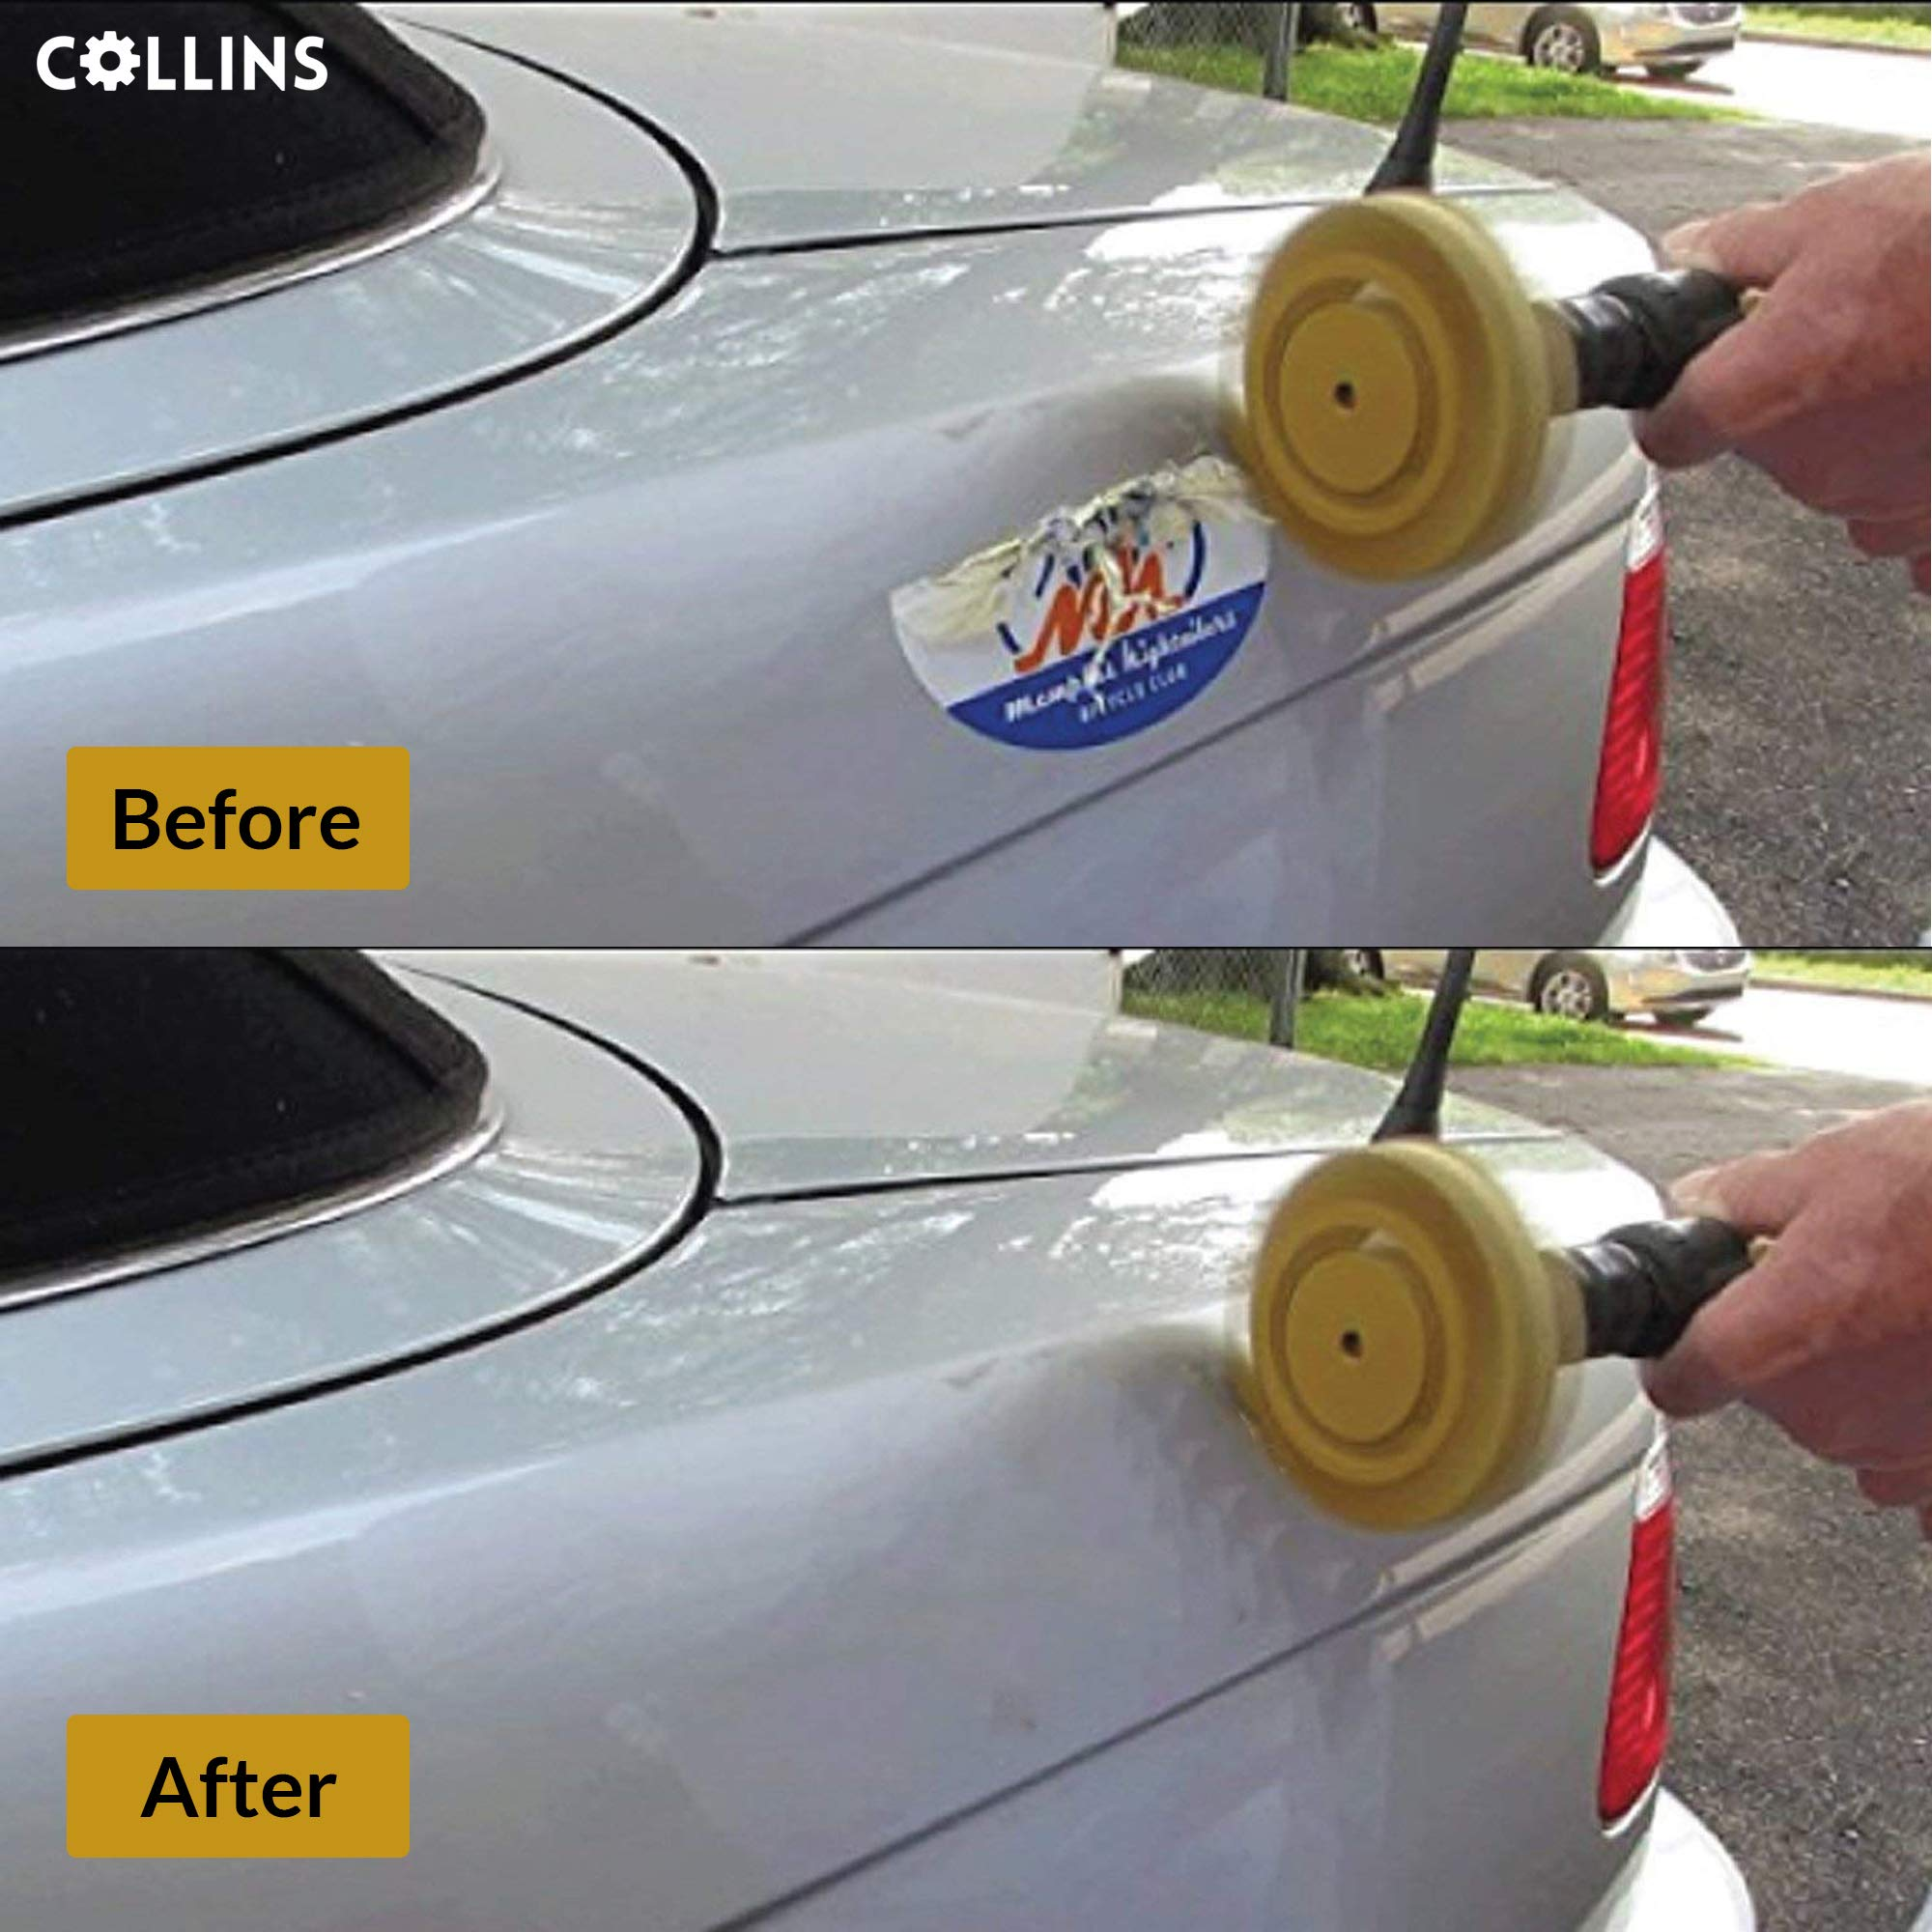 Decal Remover 3m Rubber Eraser Wheel, Adhesive Remover with Drill Adapter 4 inch- Vinyl Decals, Pinstripes, Stickers, Double Side Adhesive Removal Tool by MADE FOR THE PROFESSIONAL (Image #6)